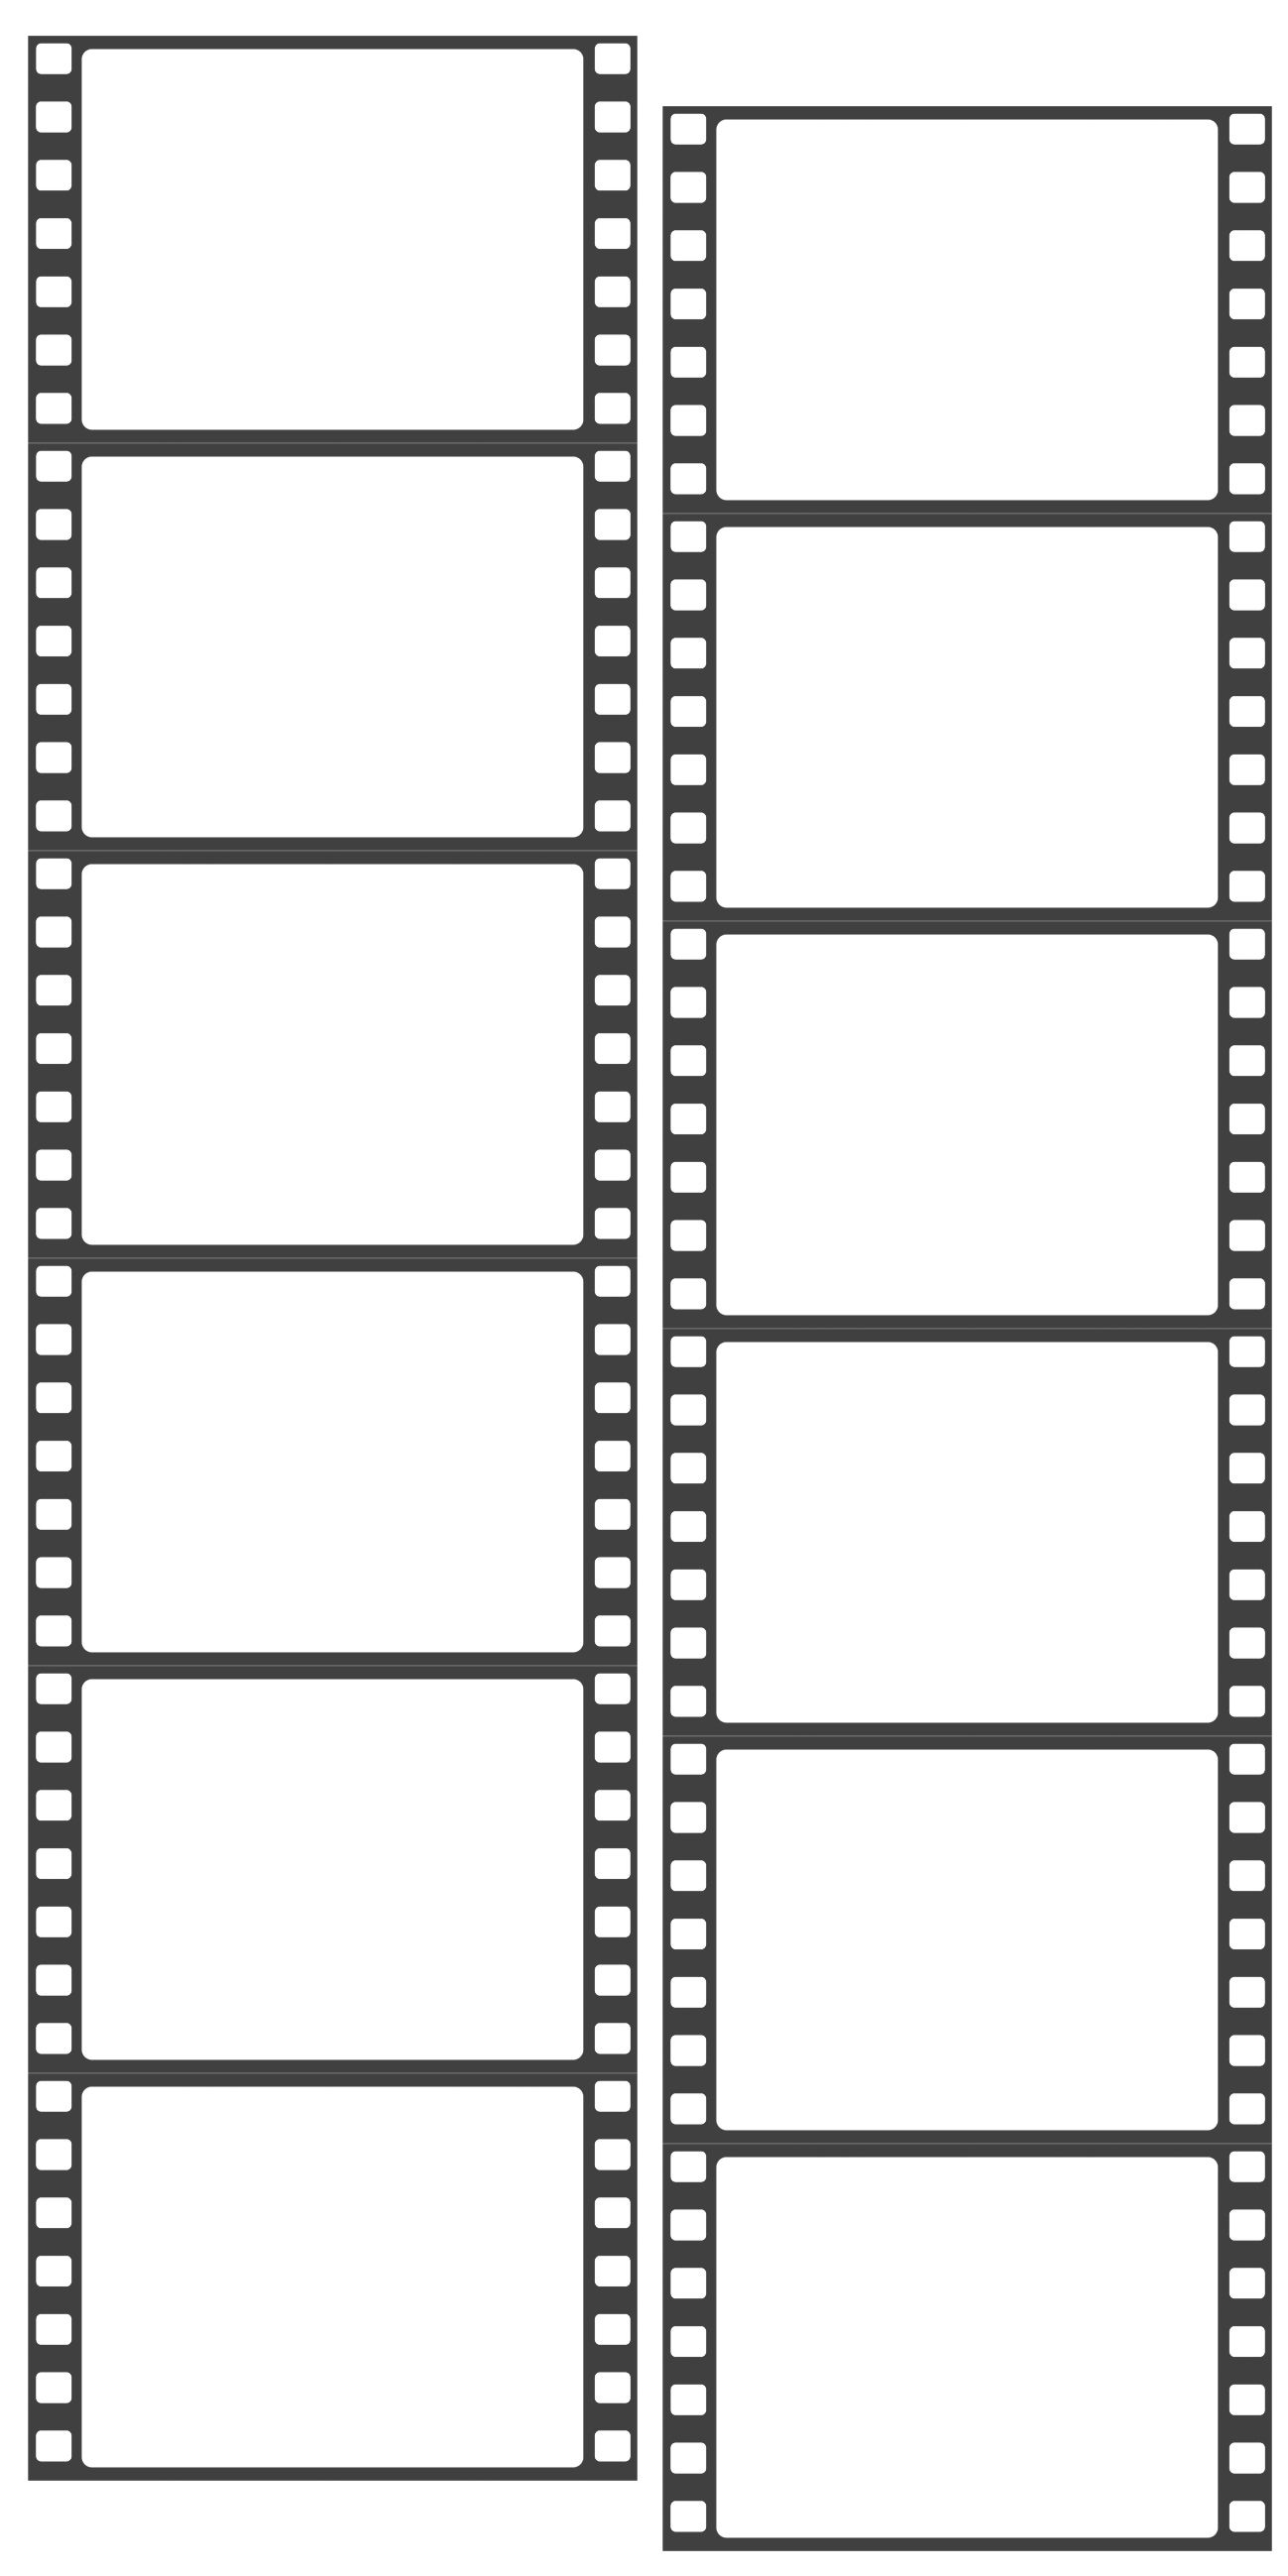 Film clipart photo booth. Photomaton template free photobooth